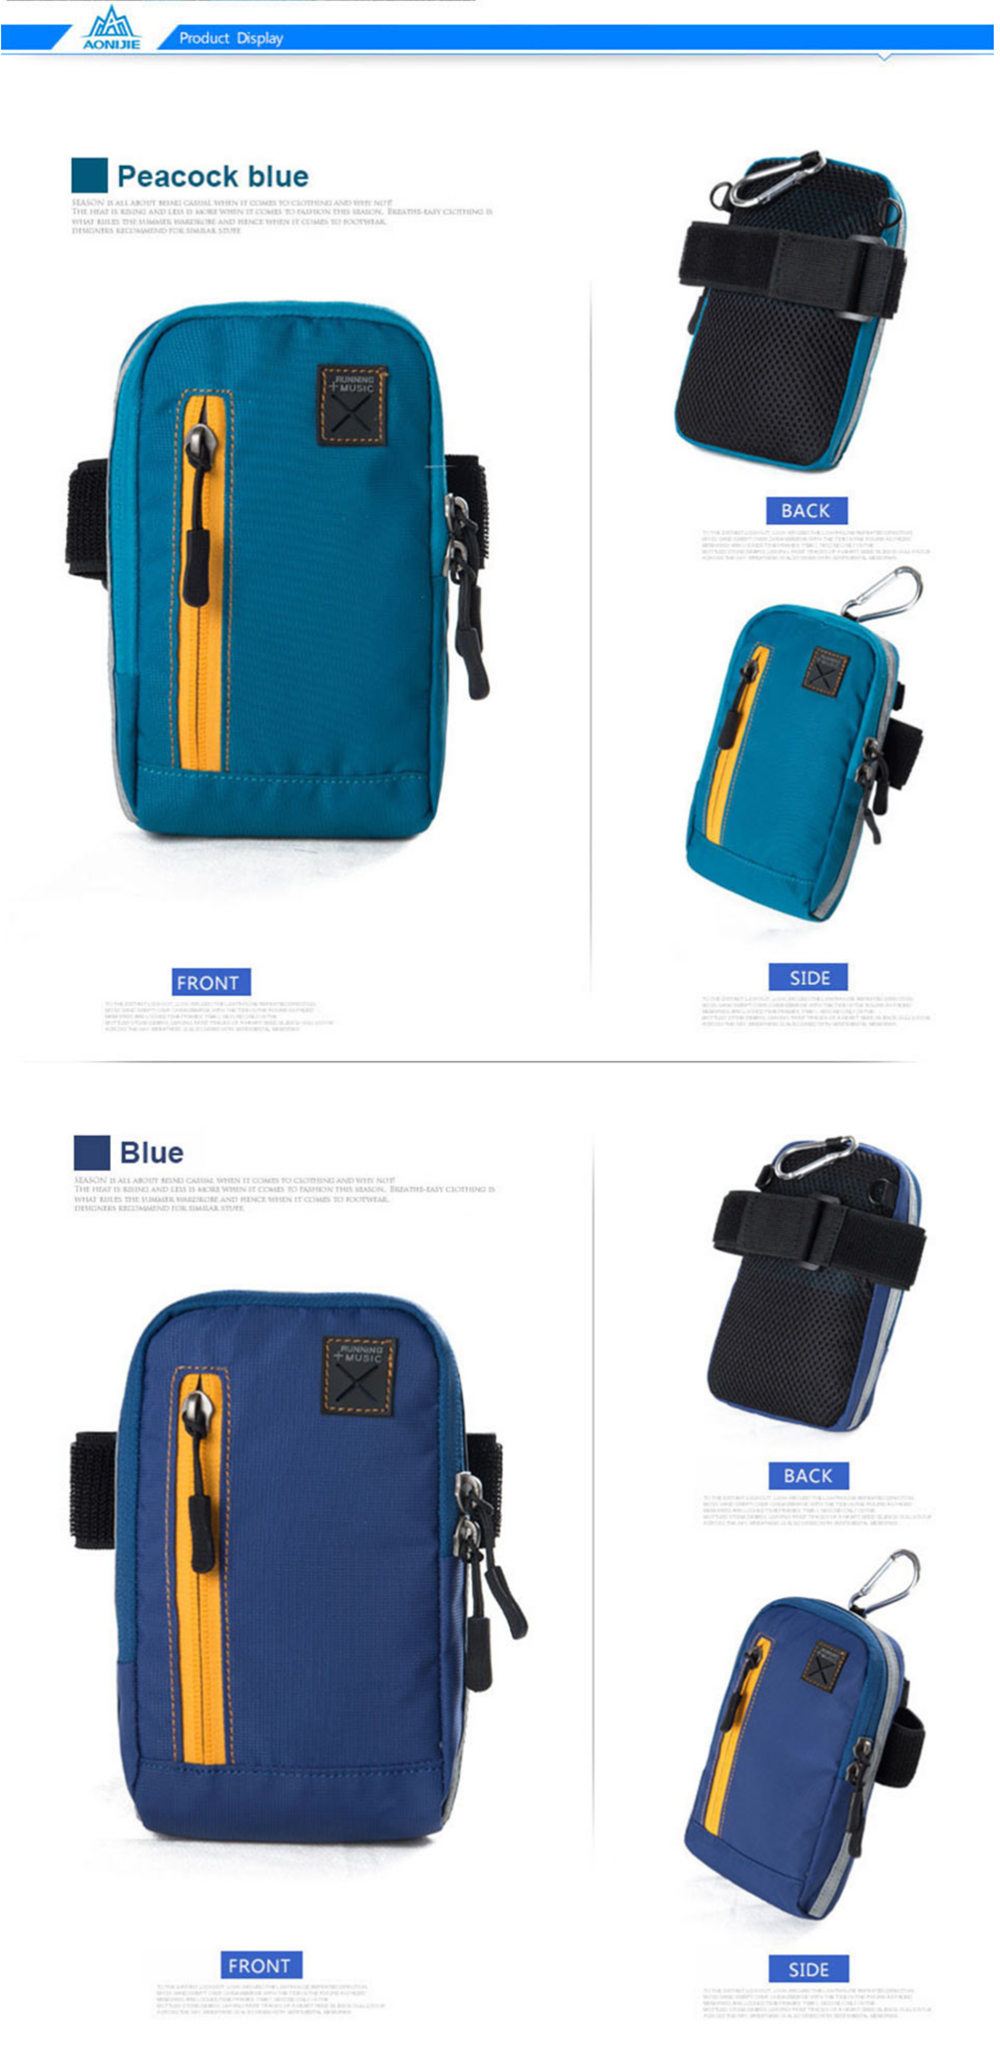 AONIJIE-Arm-Bags-For-Outdoor-Running-Coins-Purse-S_08